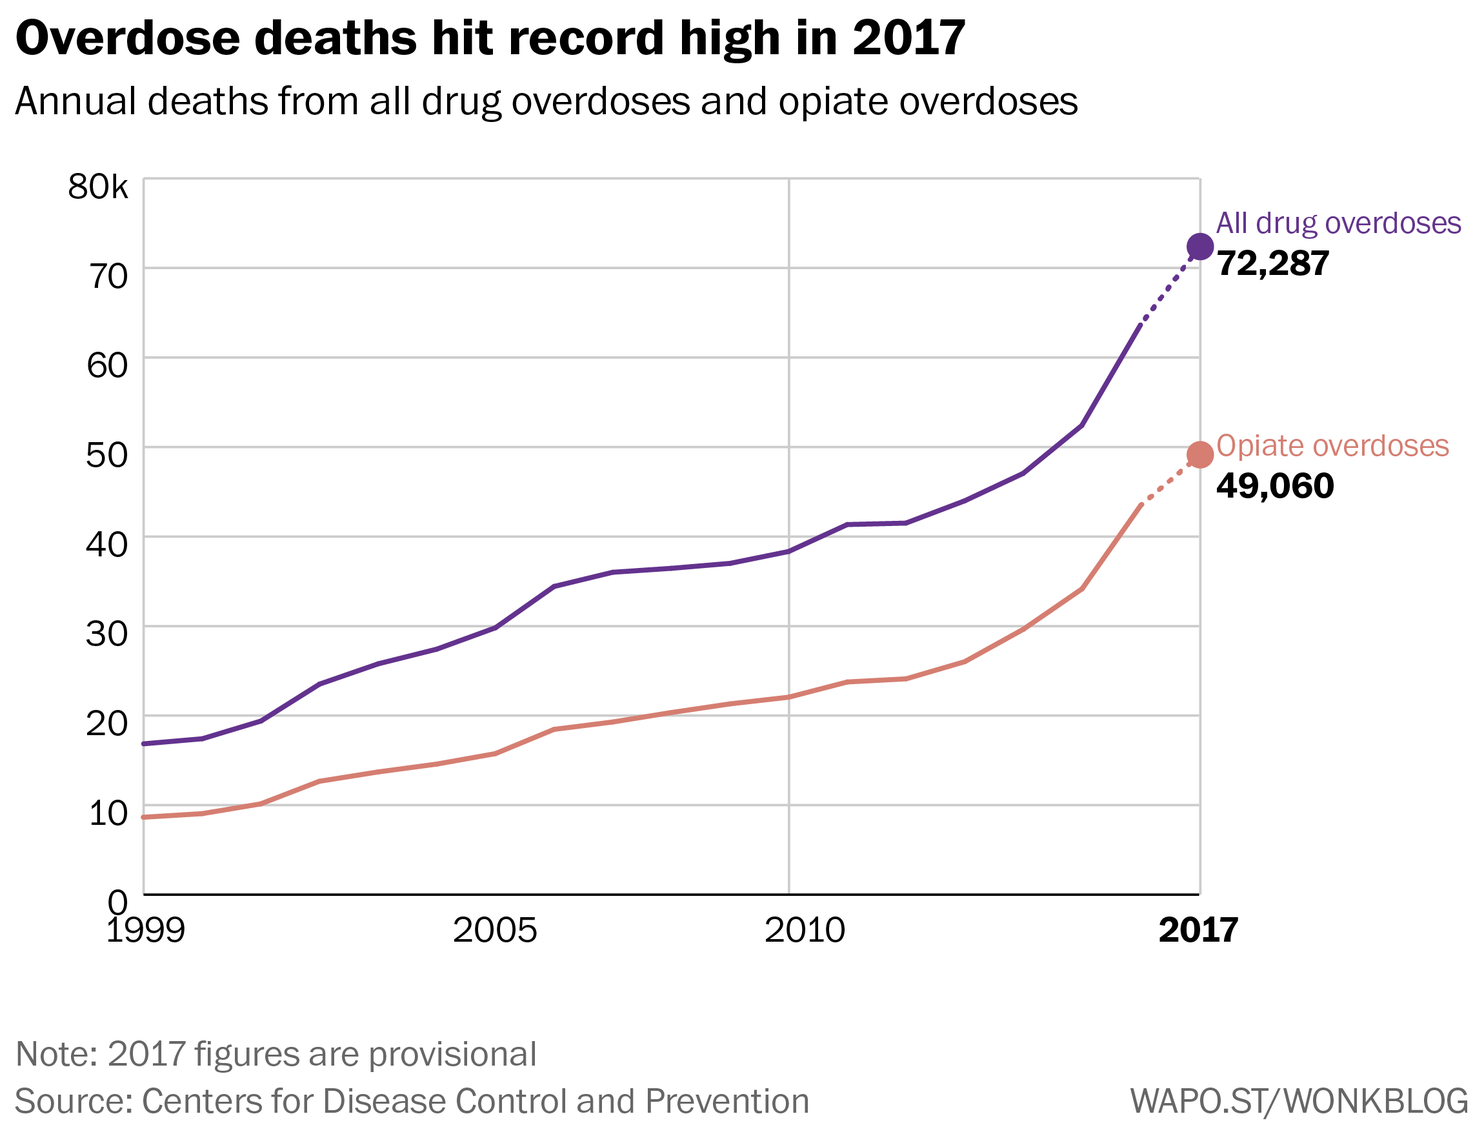 National Drug Prevention Alliance Ppp Papers Heartbeat Monitor Project Circuit With Tachycardia Alarm Circuits Overdose Deaths Surpassed 72000 In 2017 According To Provisional Estimates Recently Released By The Centers For Disease Control And